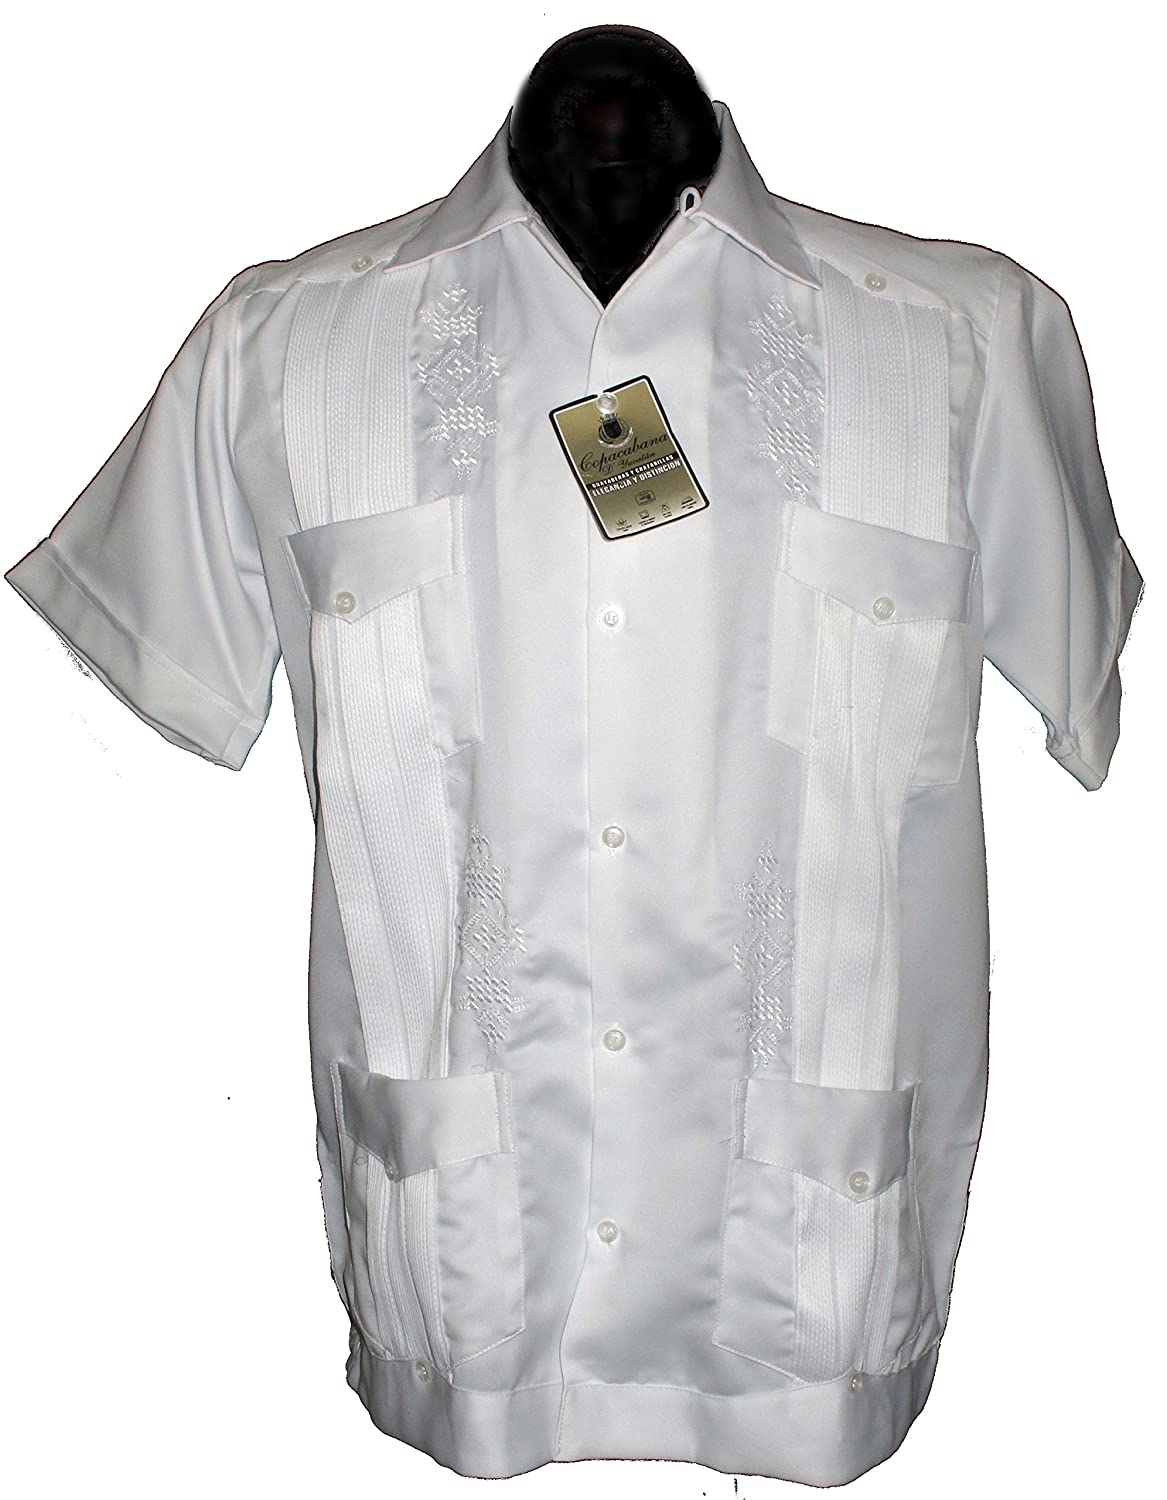 Guayabera Mens Authentic Western Mexican Wedding Shirt Copacabana Yucatan White M At Amazon Clothing Store